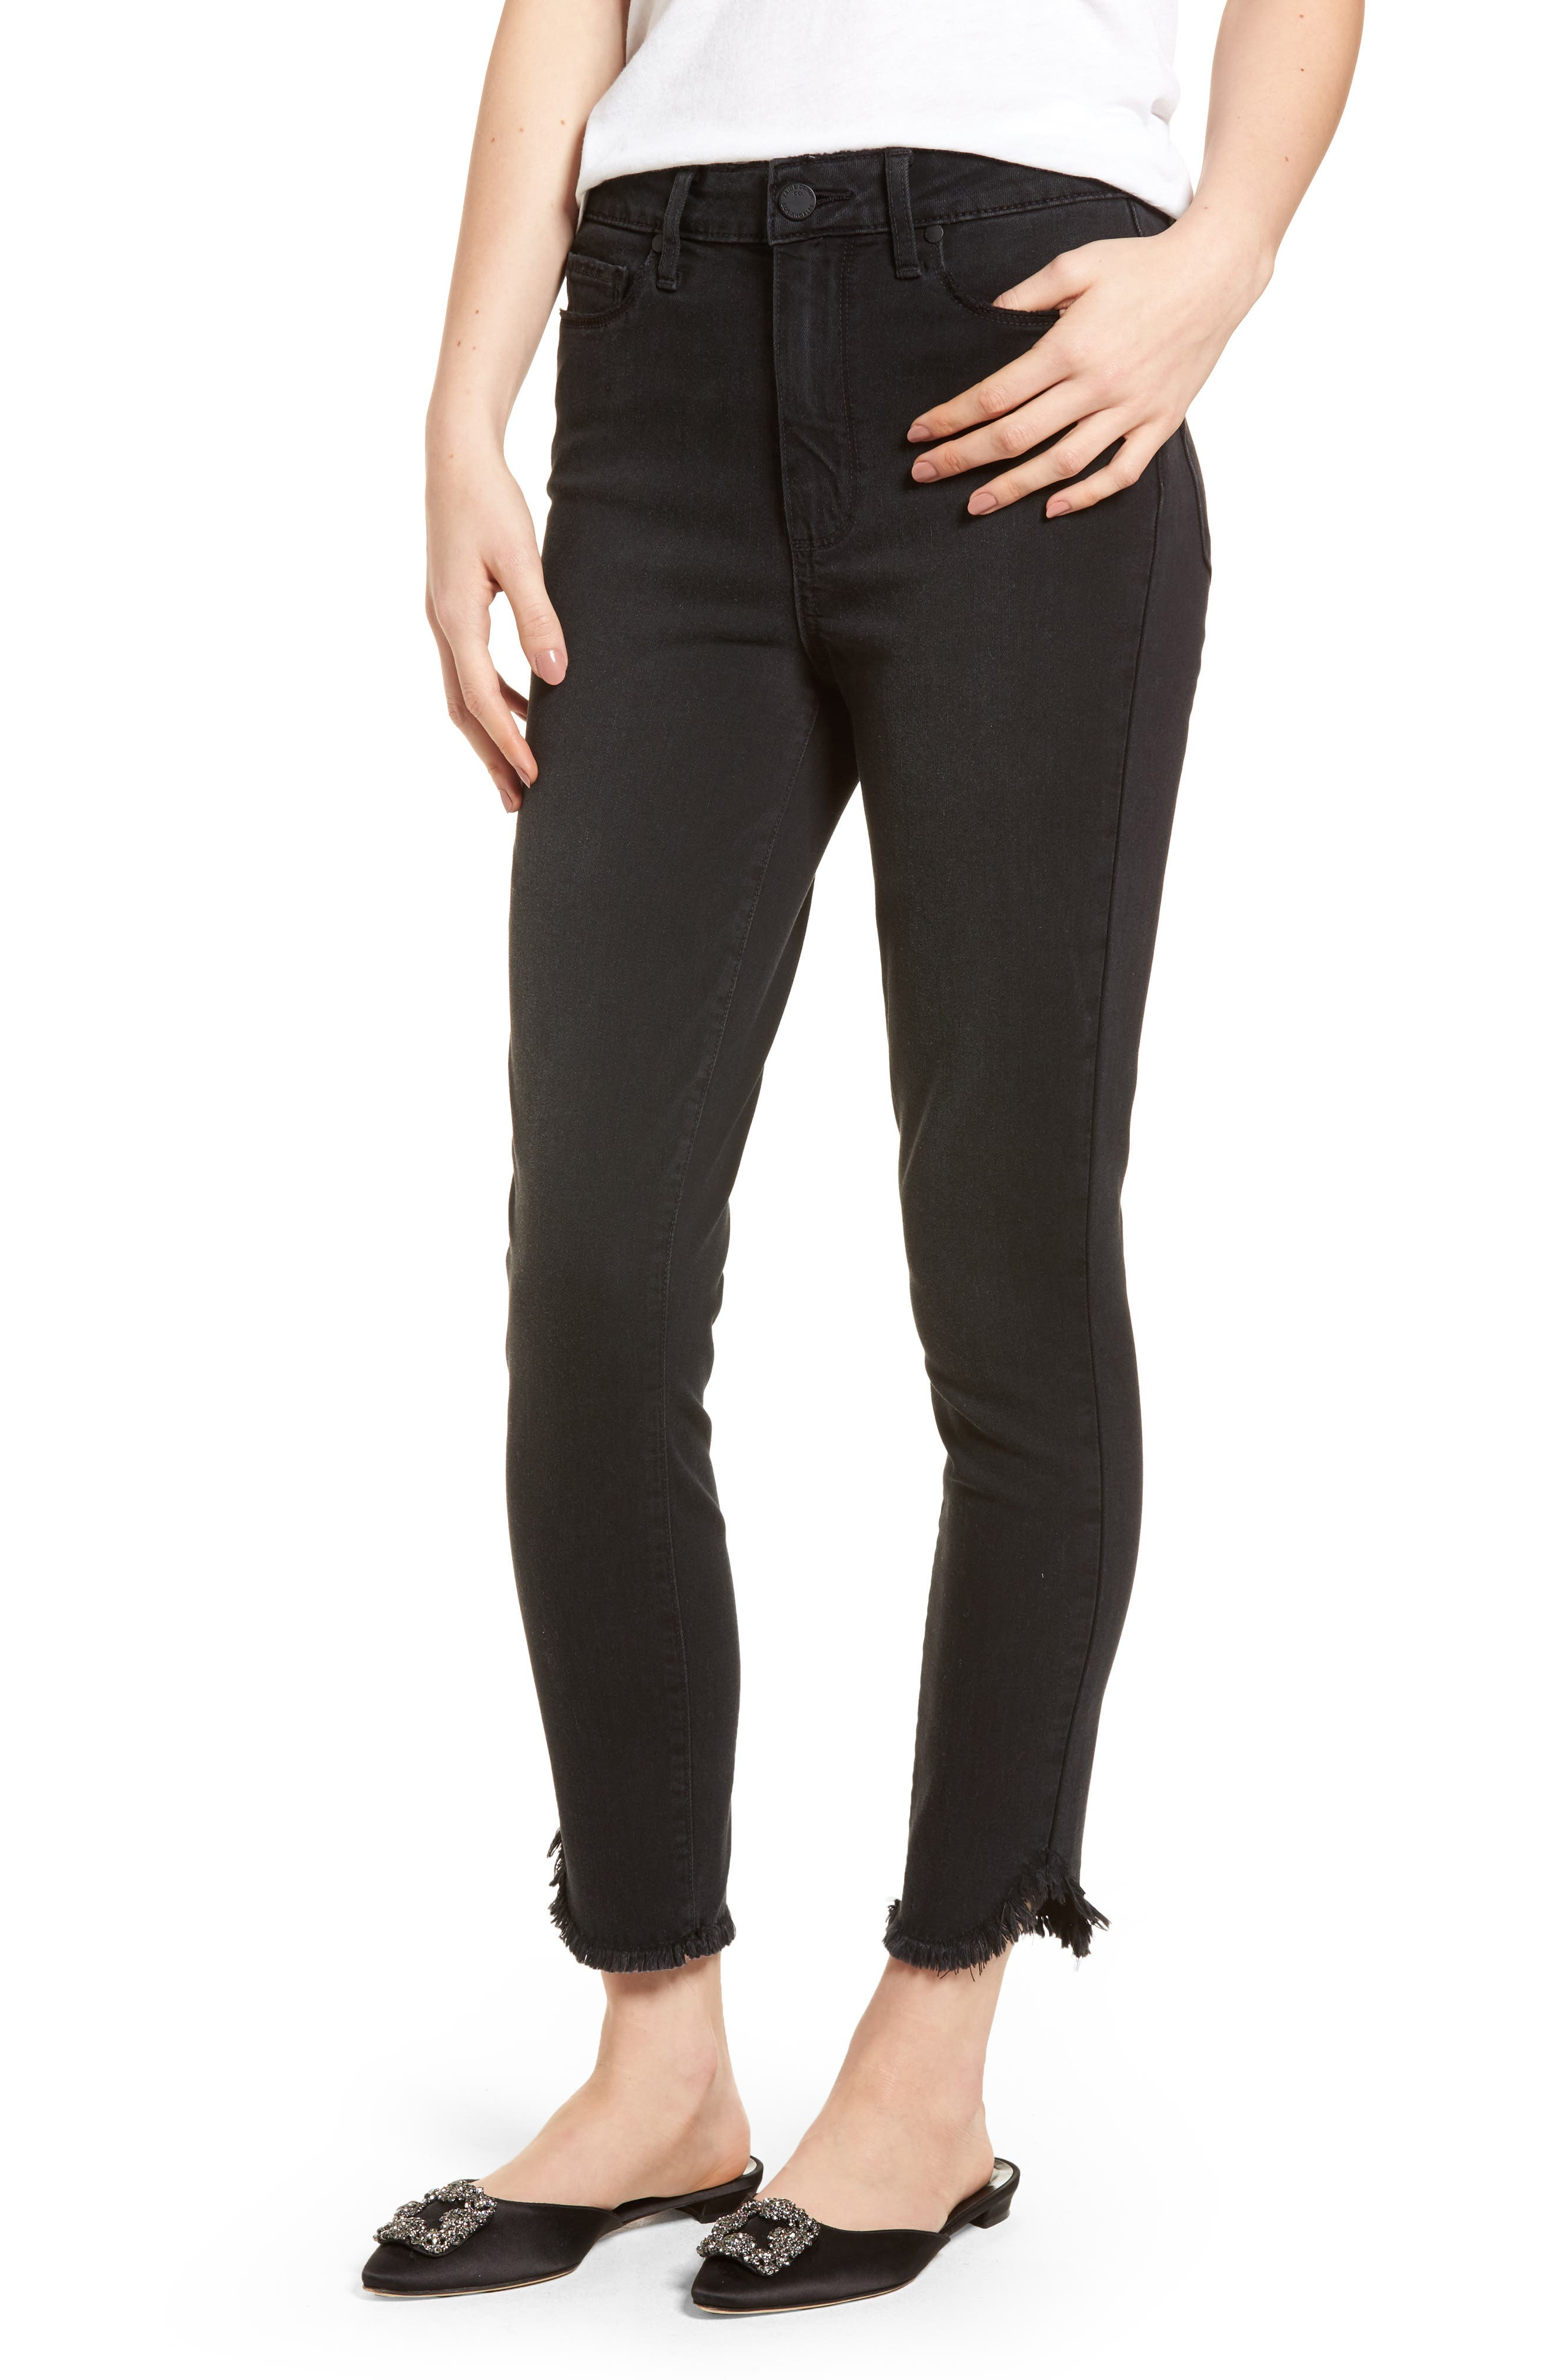 Transcend - Margot High Waist Crop Ultra Skinny Jeans,                         Main,                         color, Draco